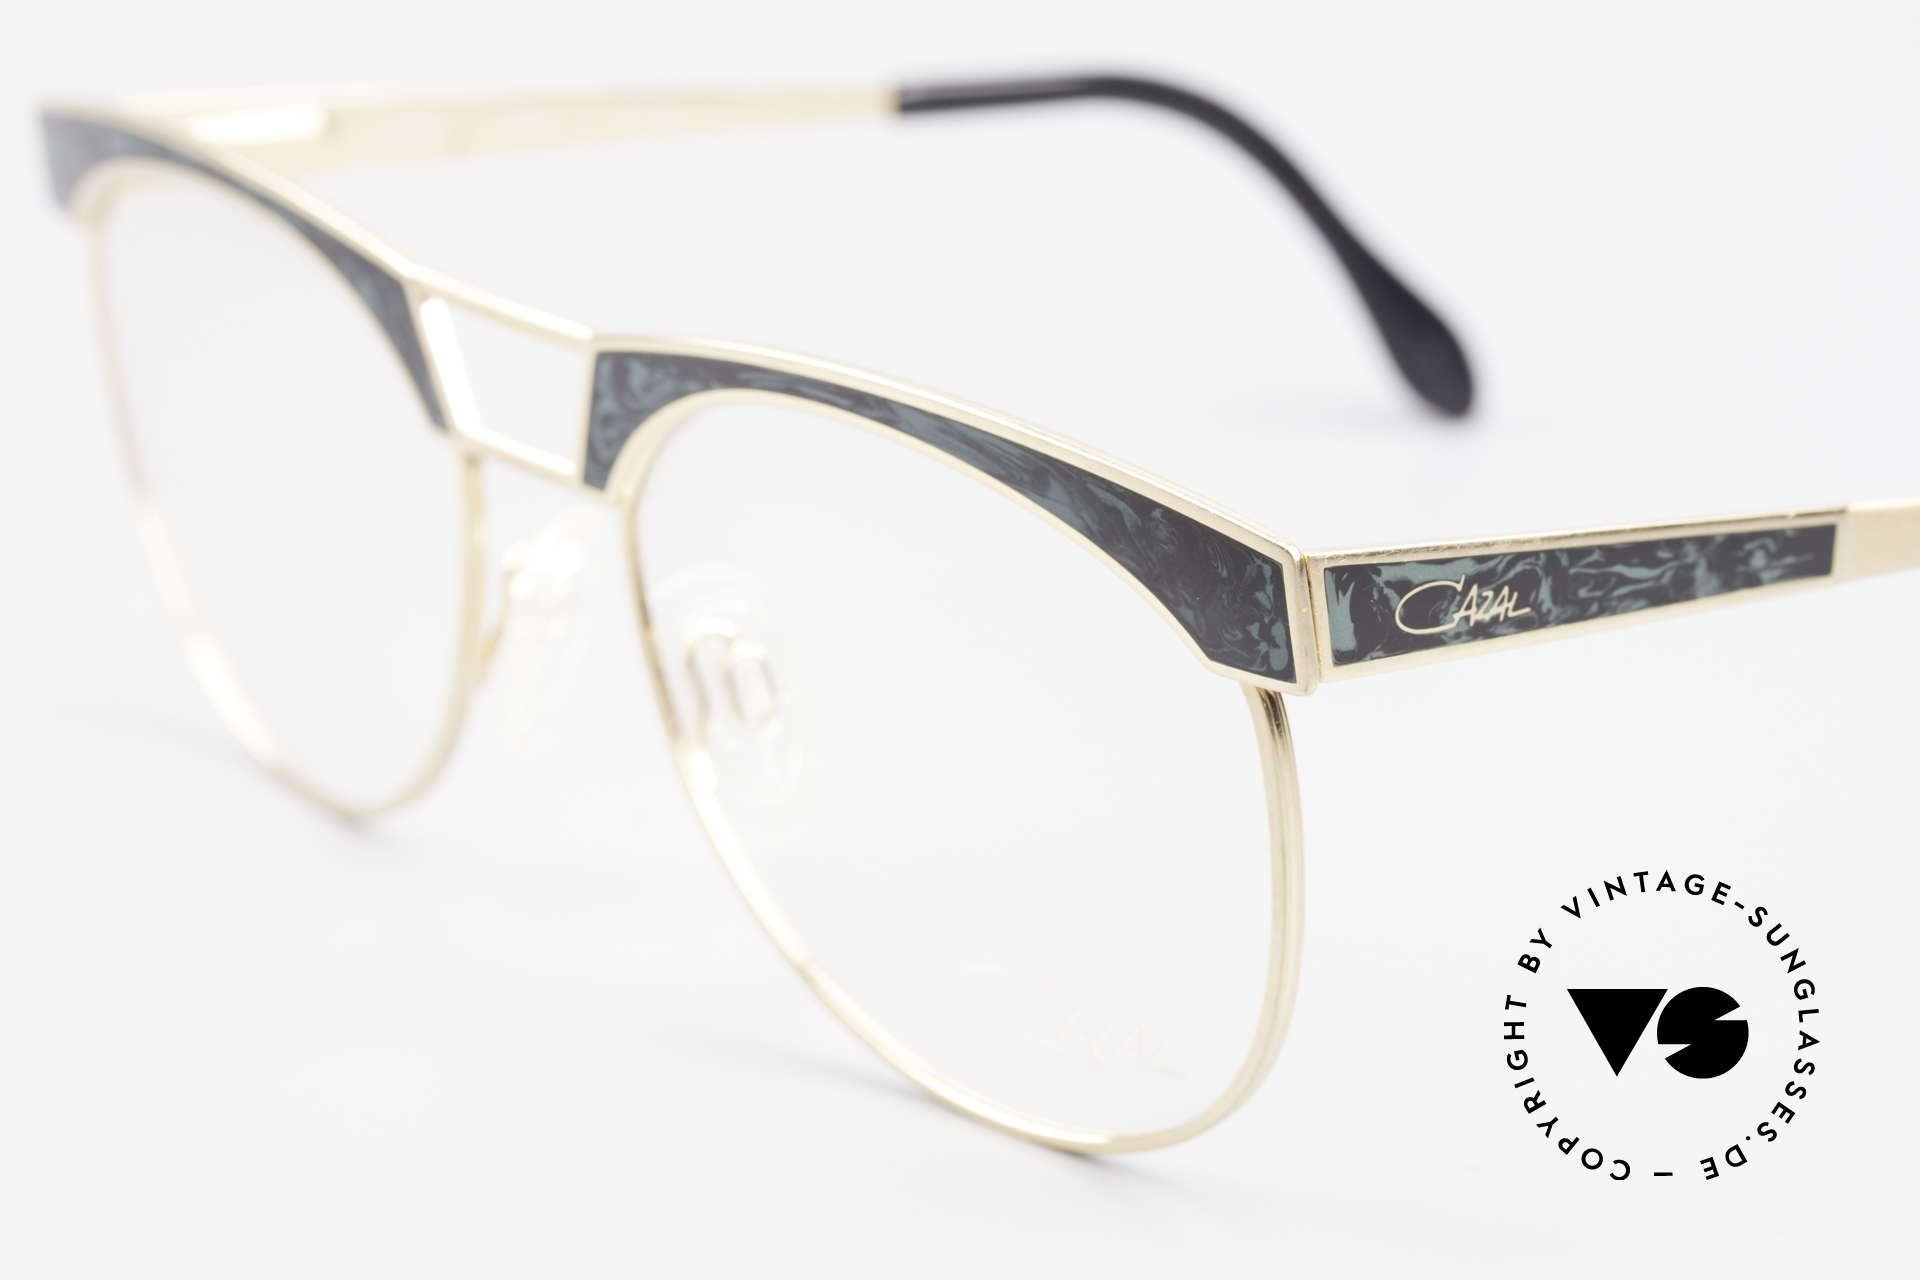 Cazal 741 Panto Style 90's Eyeglasses, with flexible spring hinges for a perfect wearing comfort, Made for Men